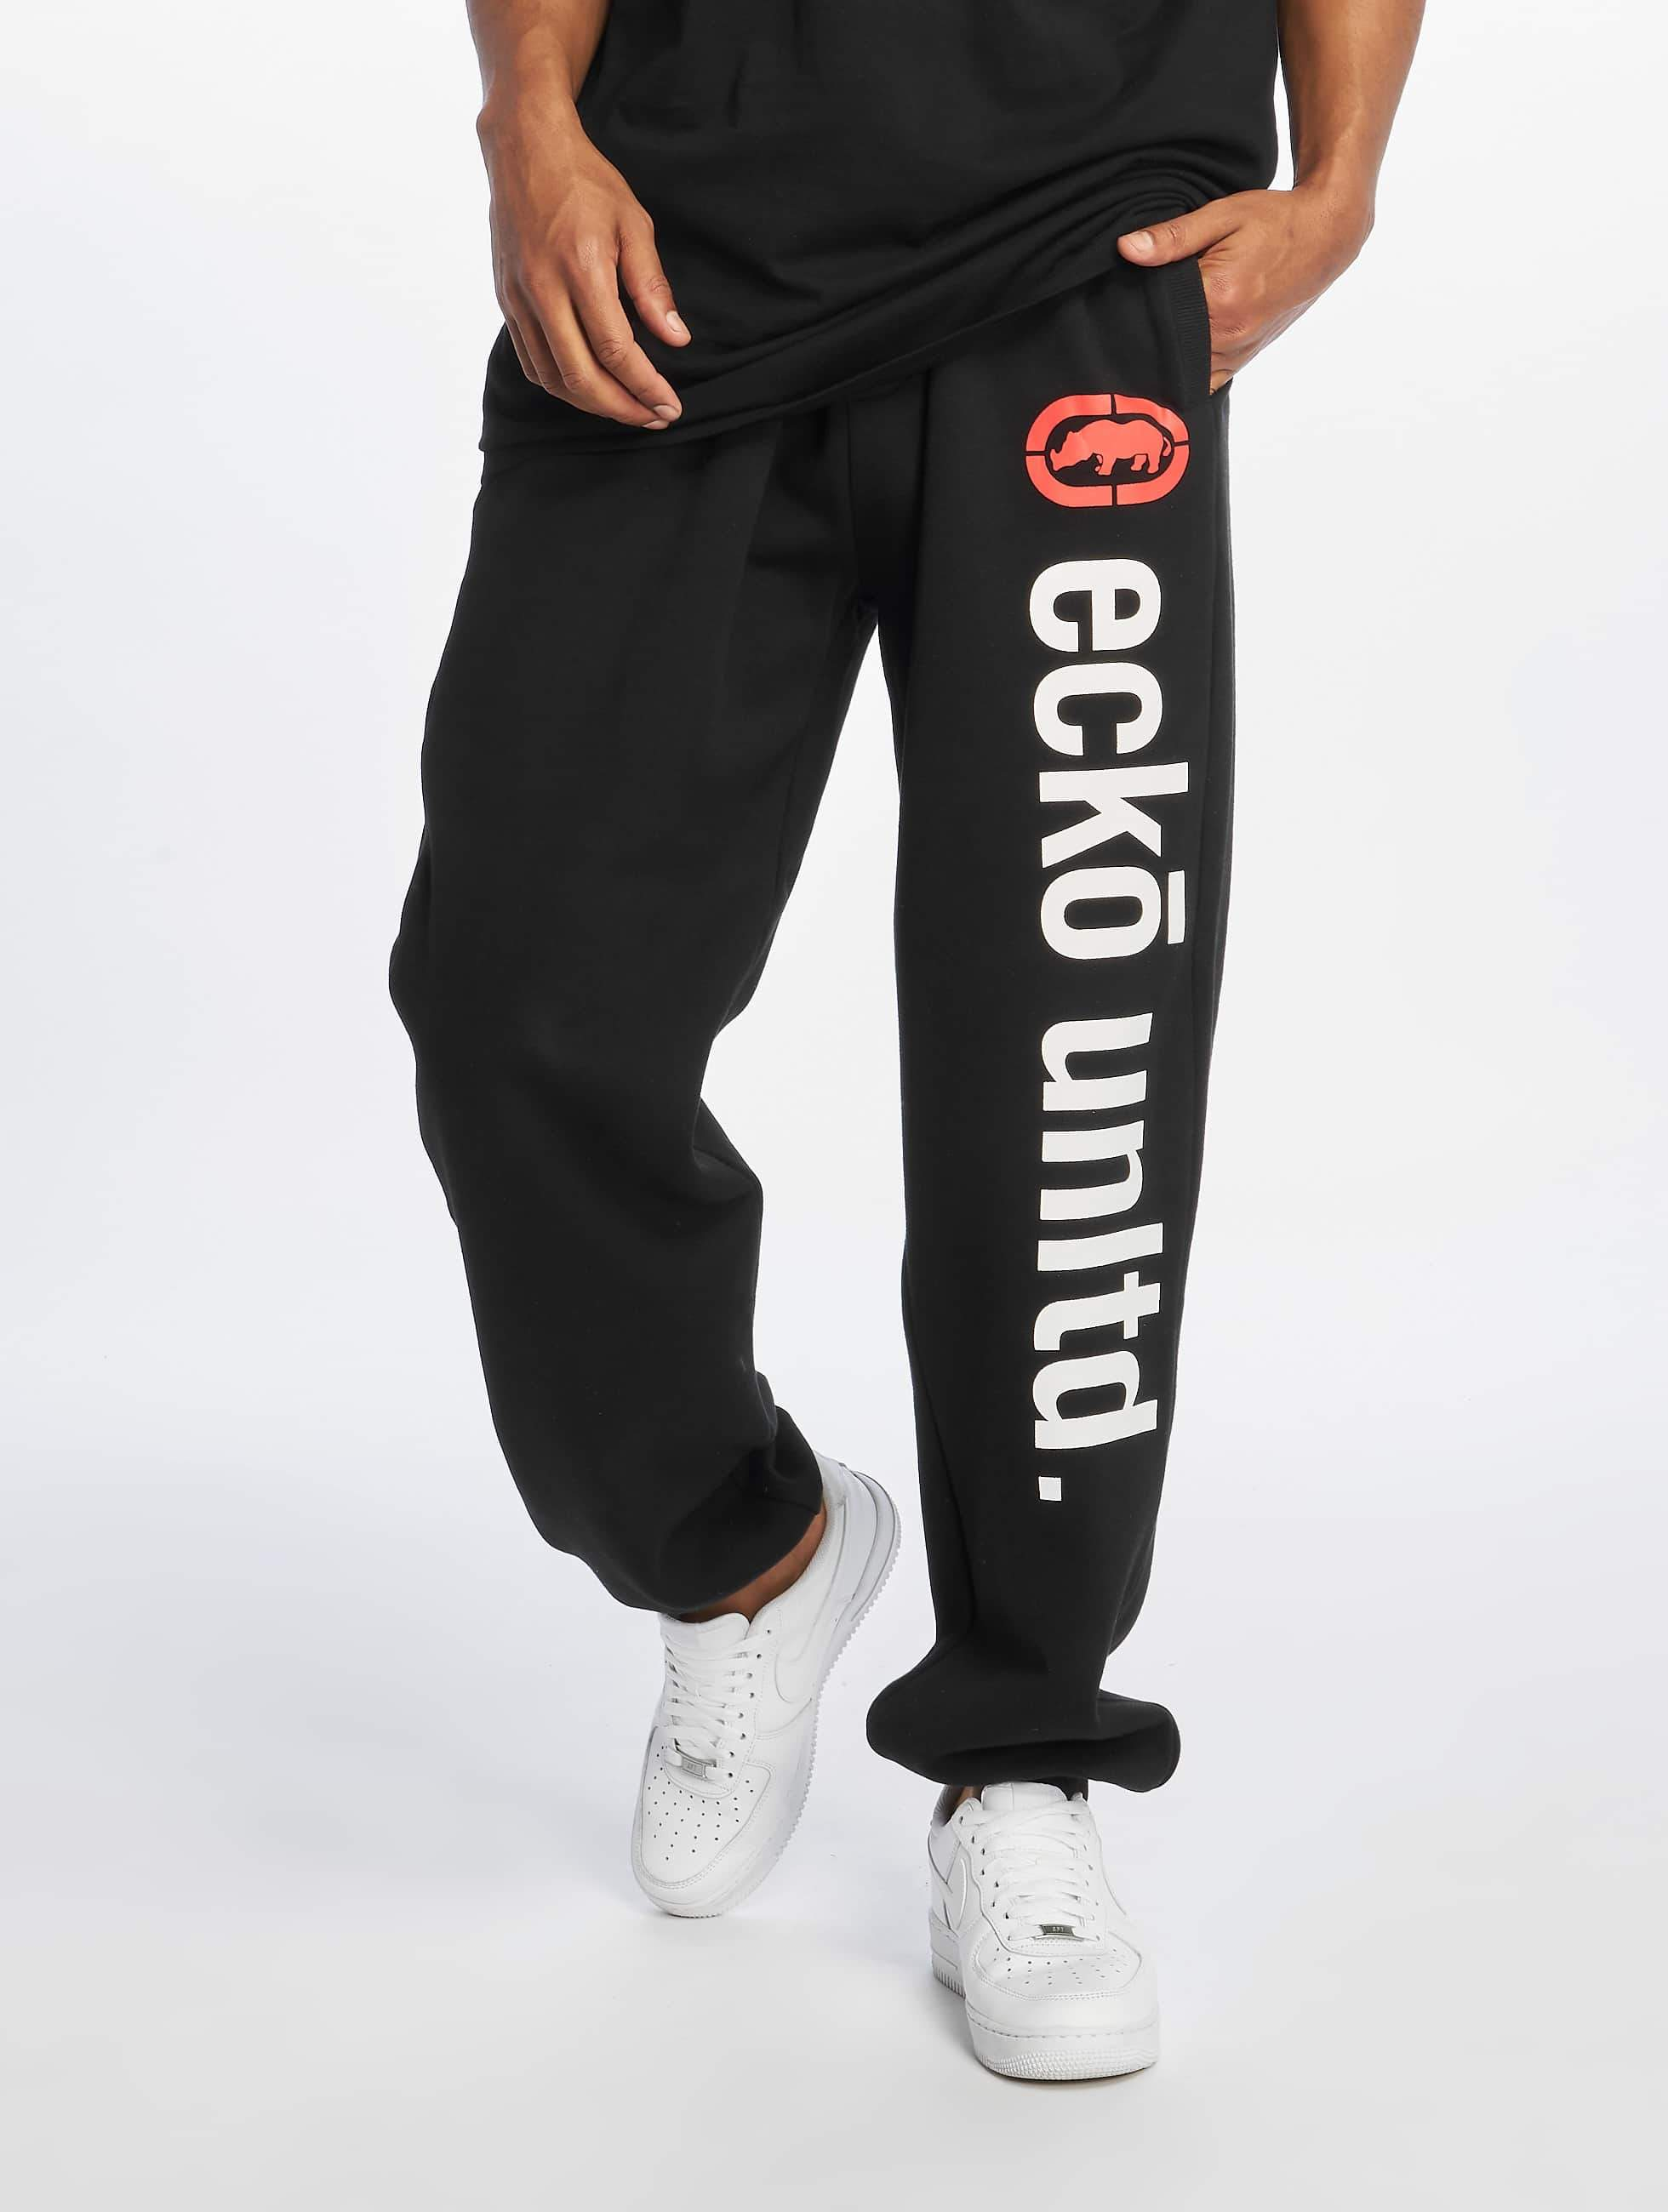 Ecko Unltd. / Sweat Pant 2Face in black 4XL